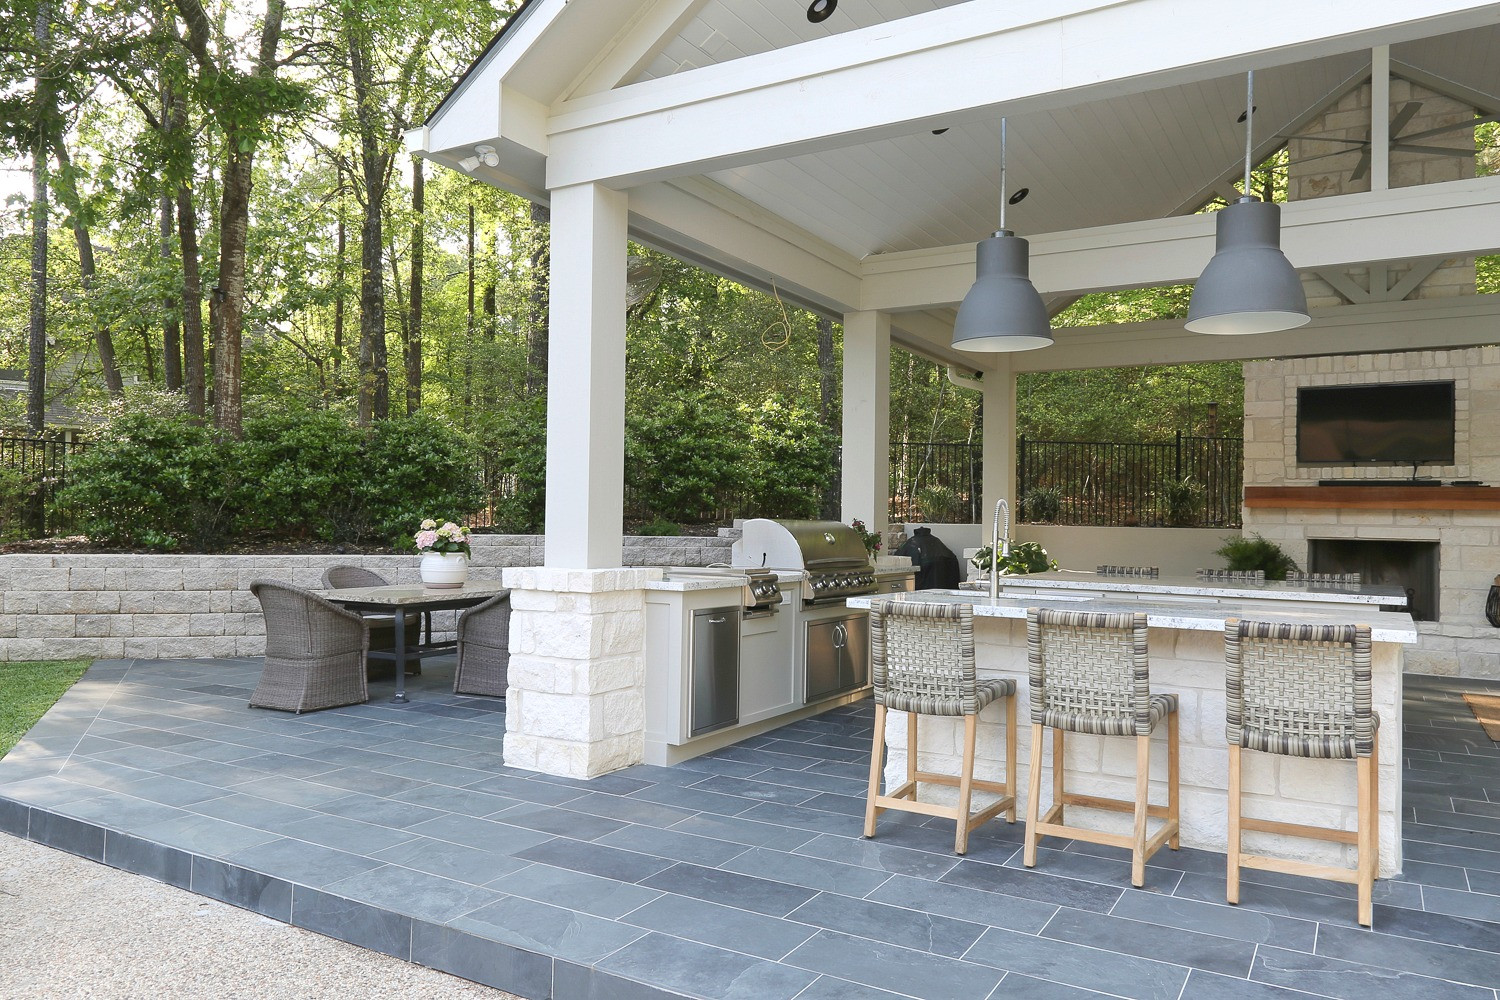 Outdoor Kitchen And Pool  Planning an Outdoor Kitchen Where to Start